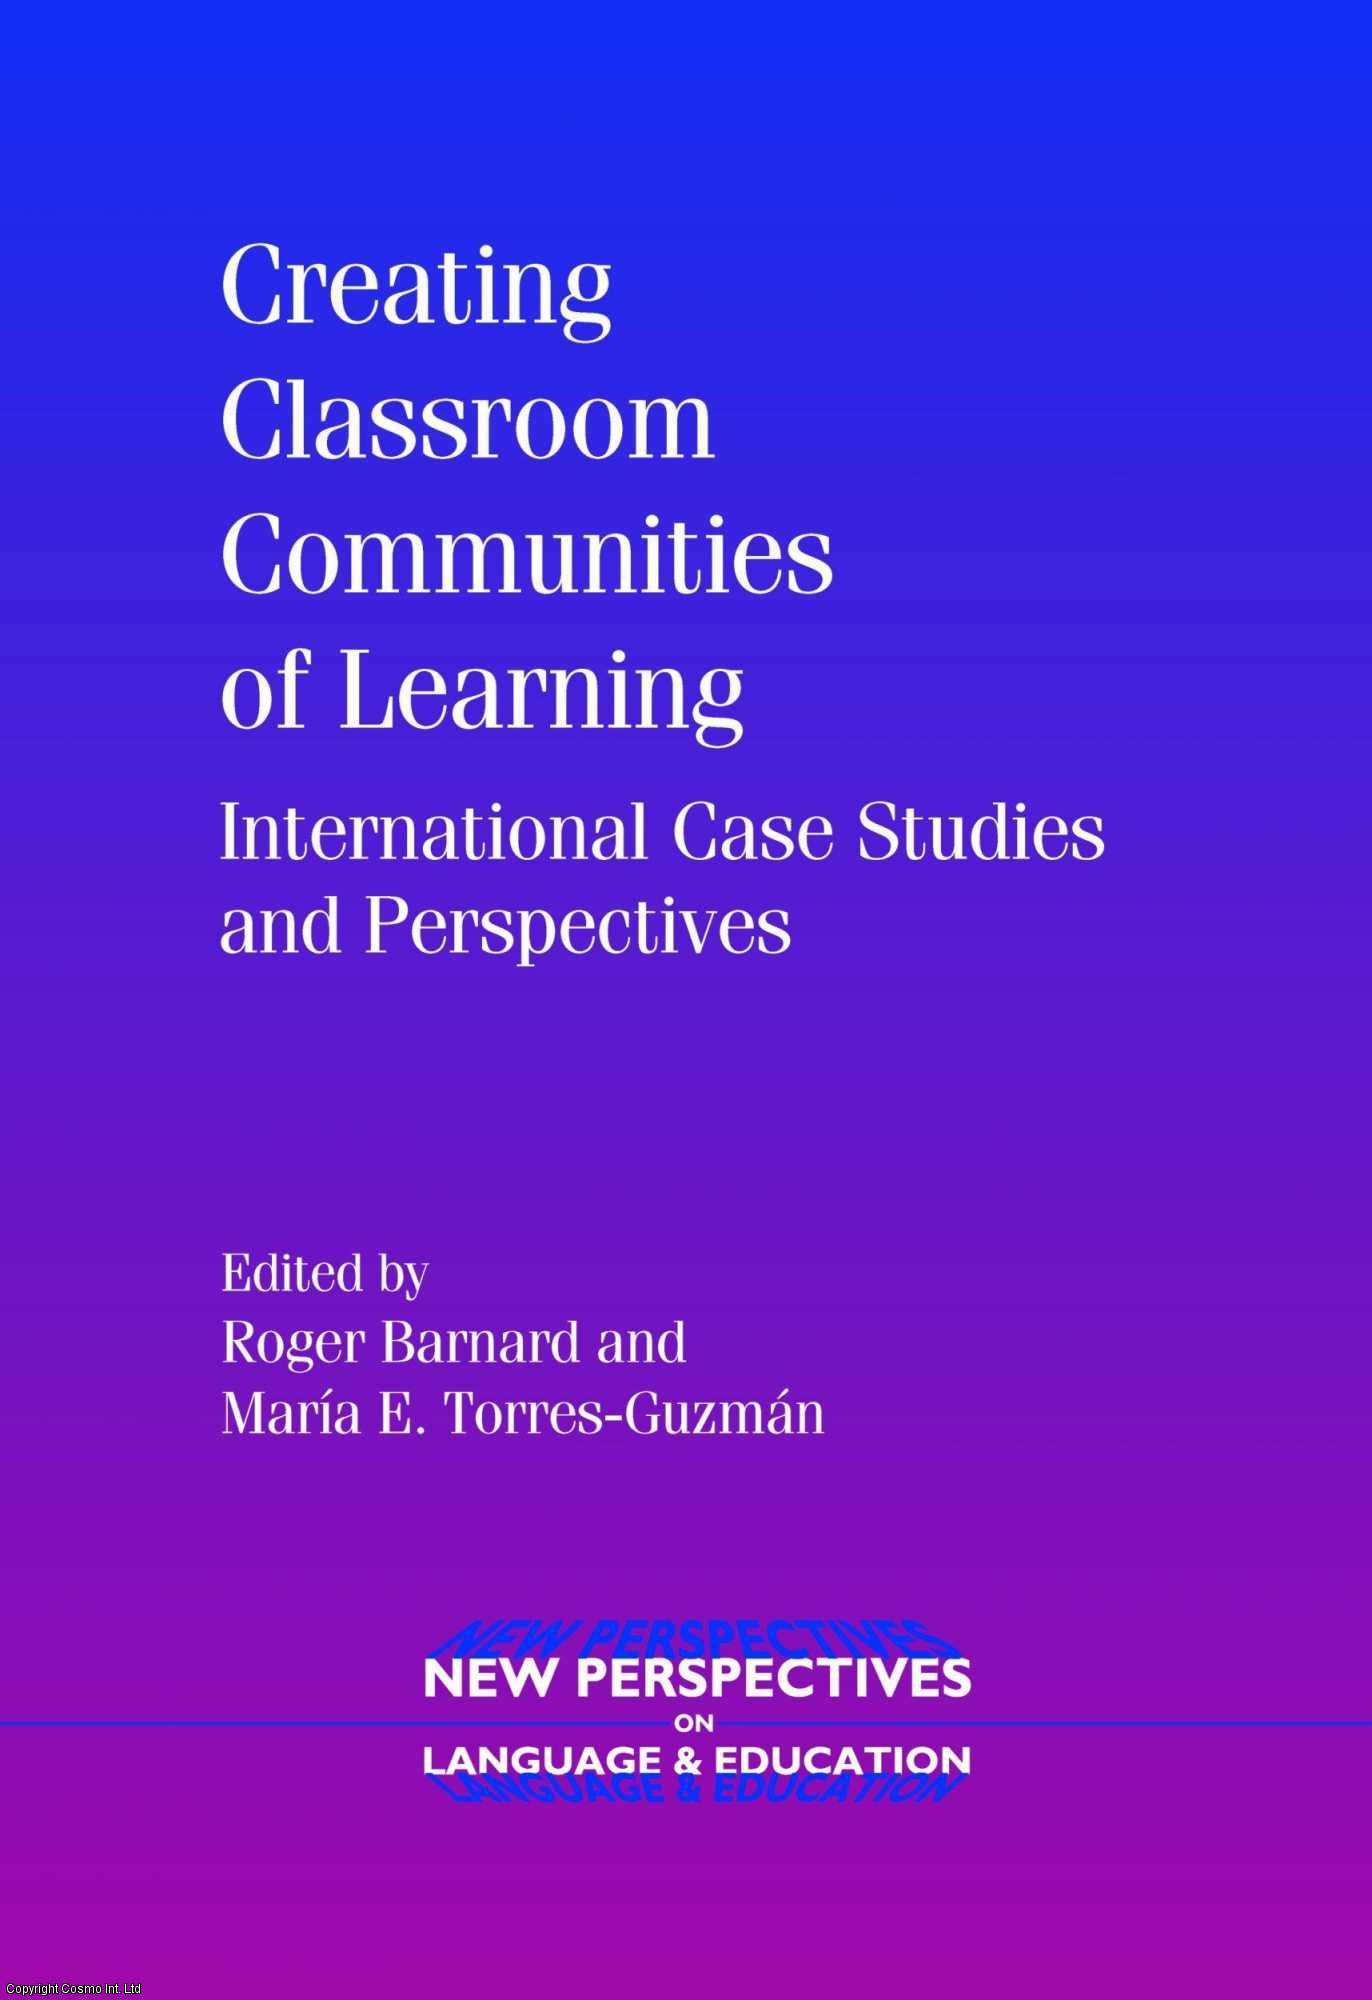 Creating Classroom Communities of Learning: International Case Studies and Pe., Barnard, Editor) Roger (Author